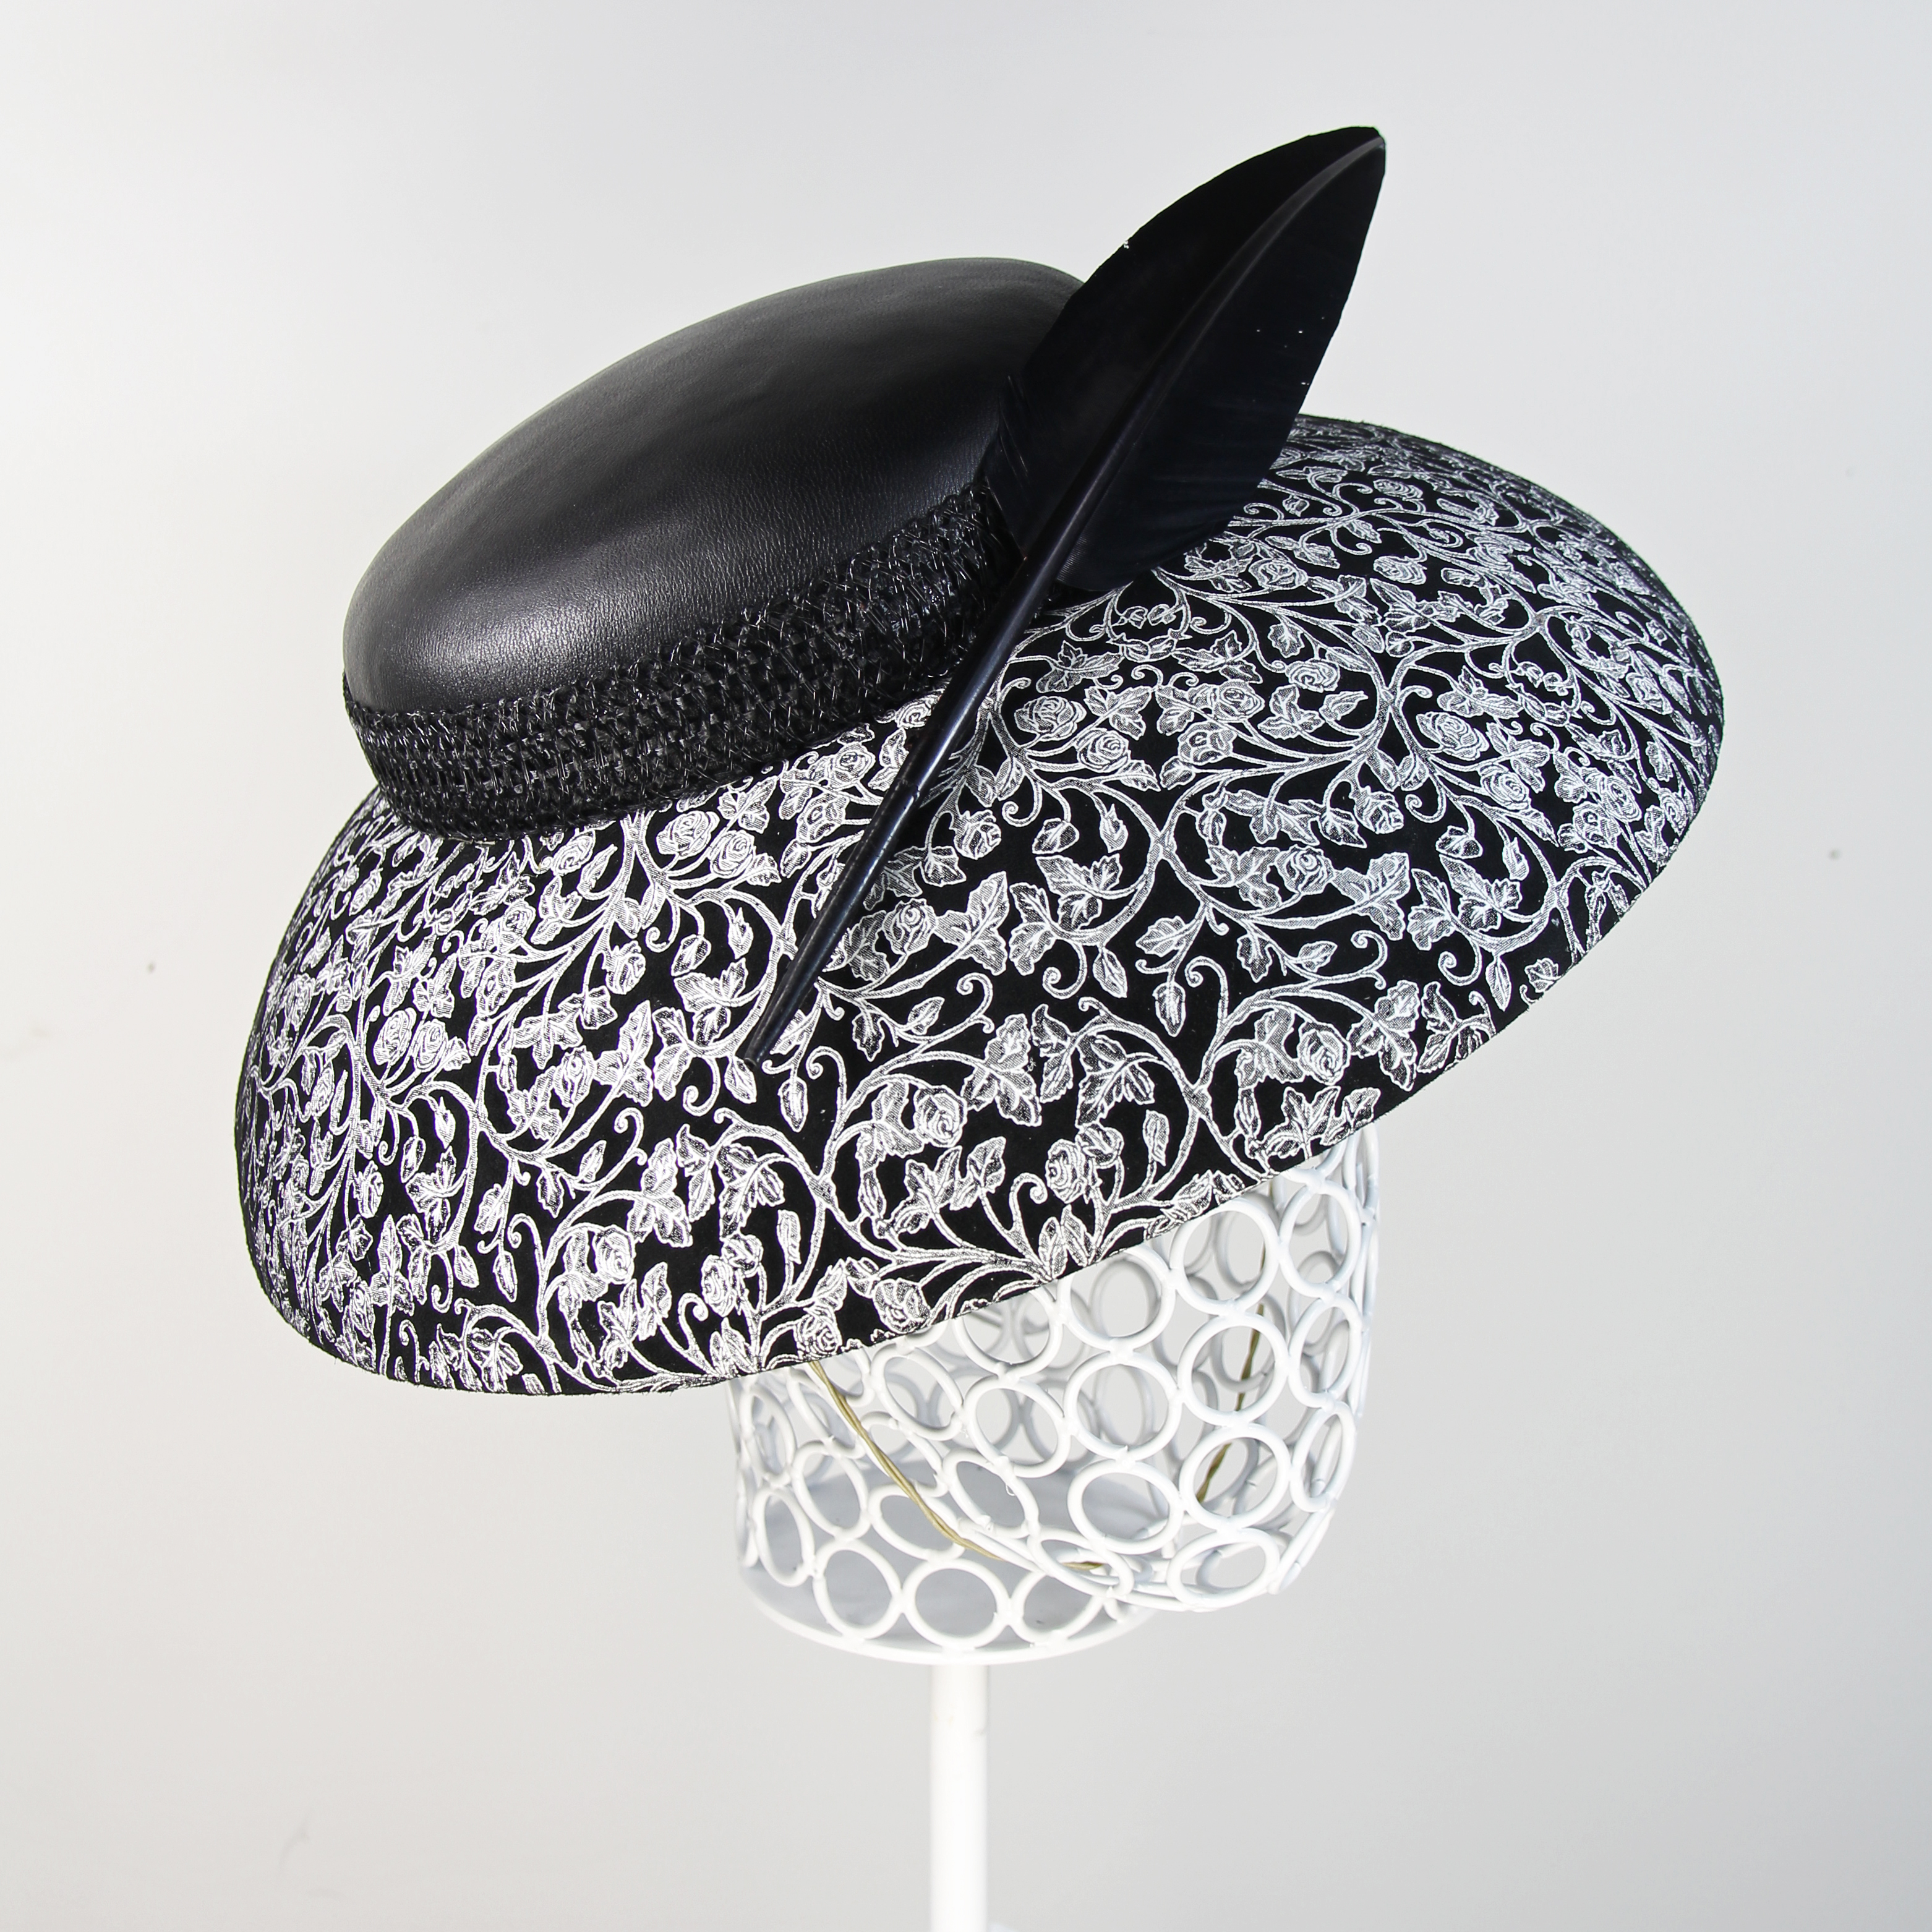 All leather black and white Audrey hat